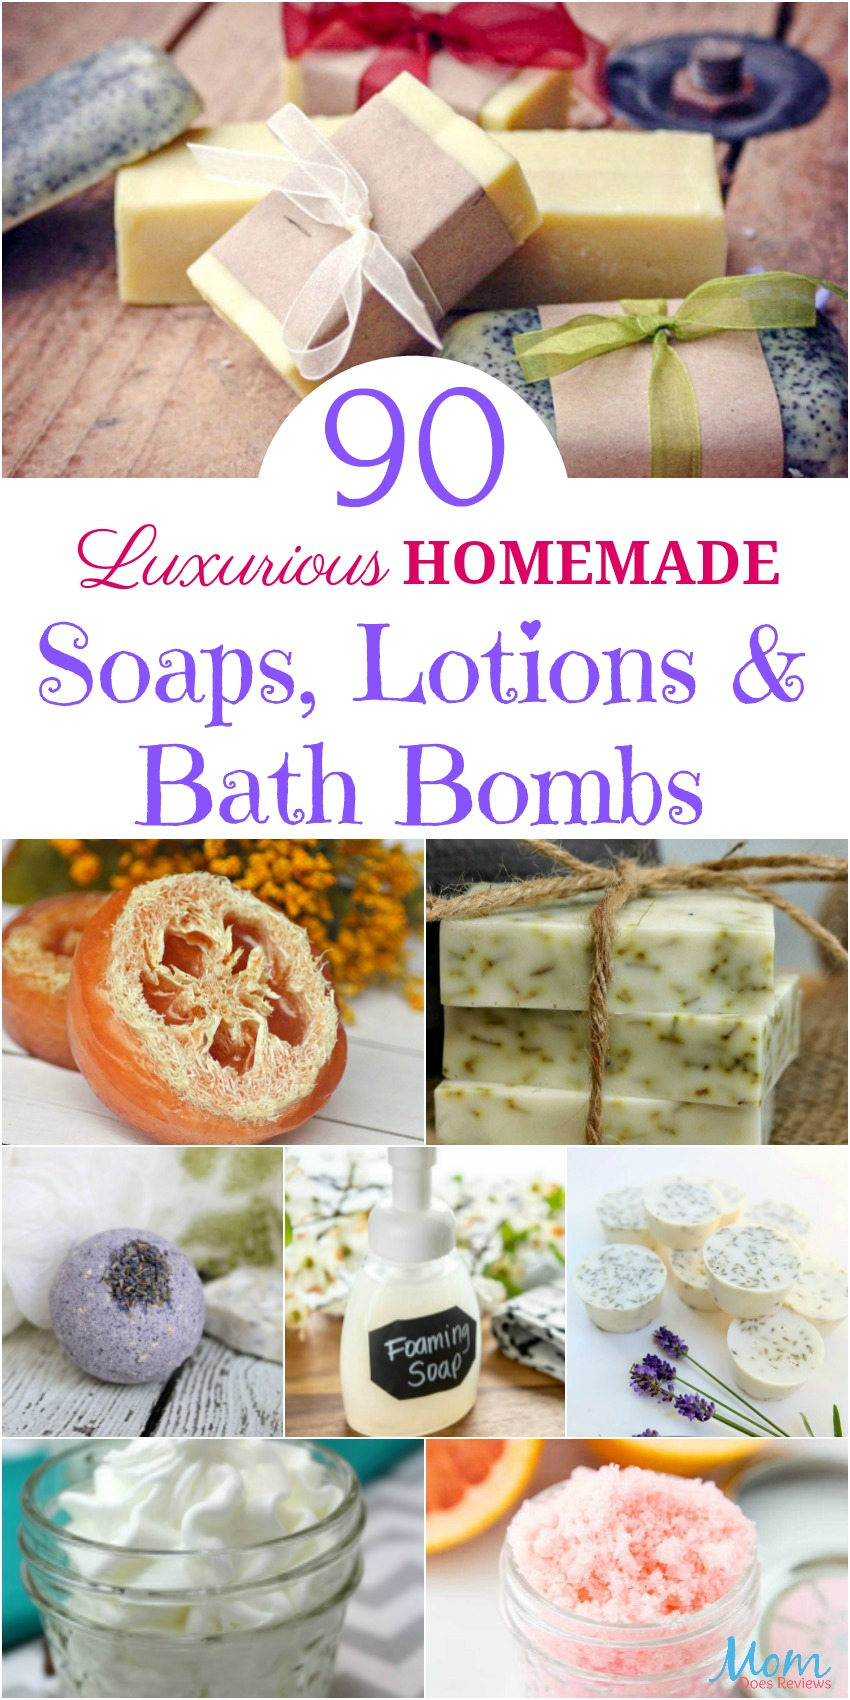 90 Luxurious Homemade Soaps, Lotions, and Bath Bombs #Diy #Homemade #soaps #lotions #bathbombs